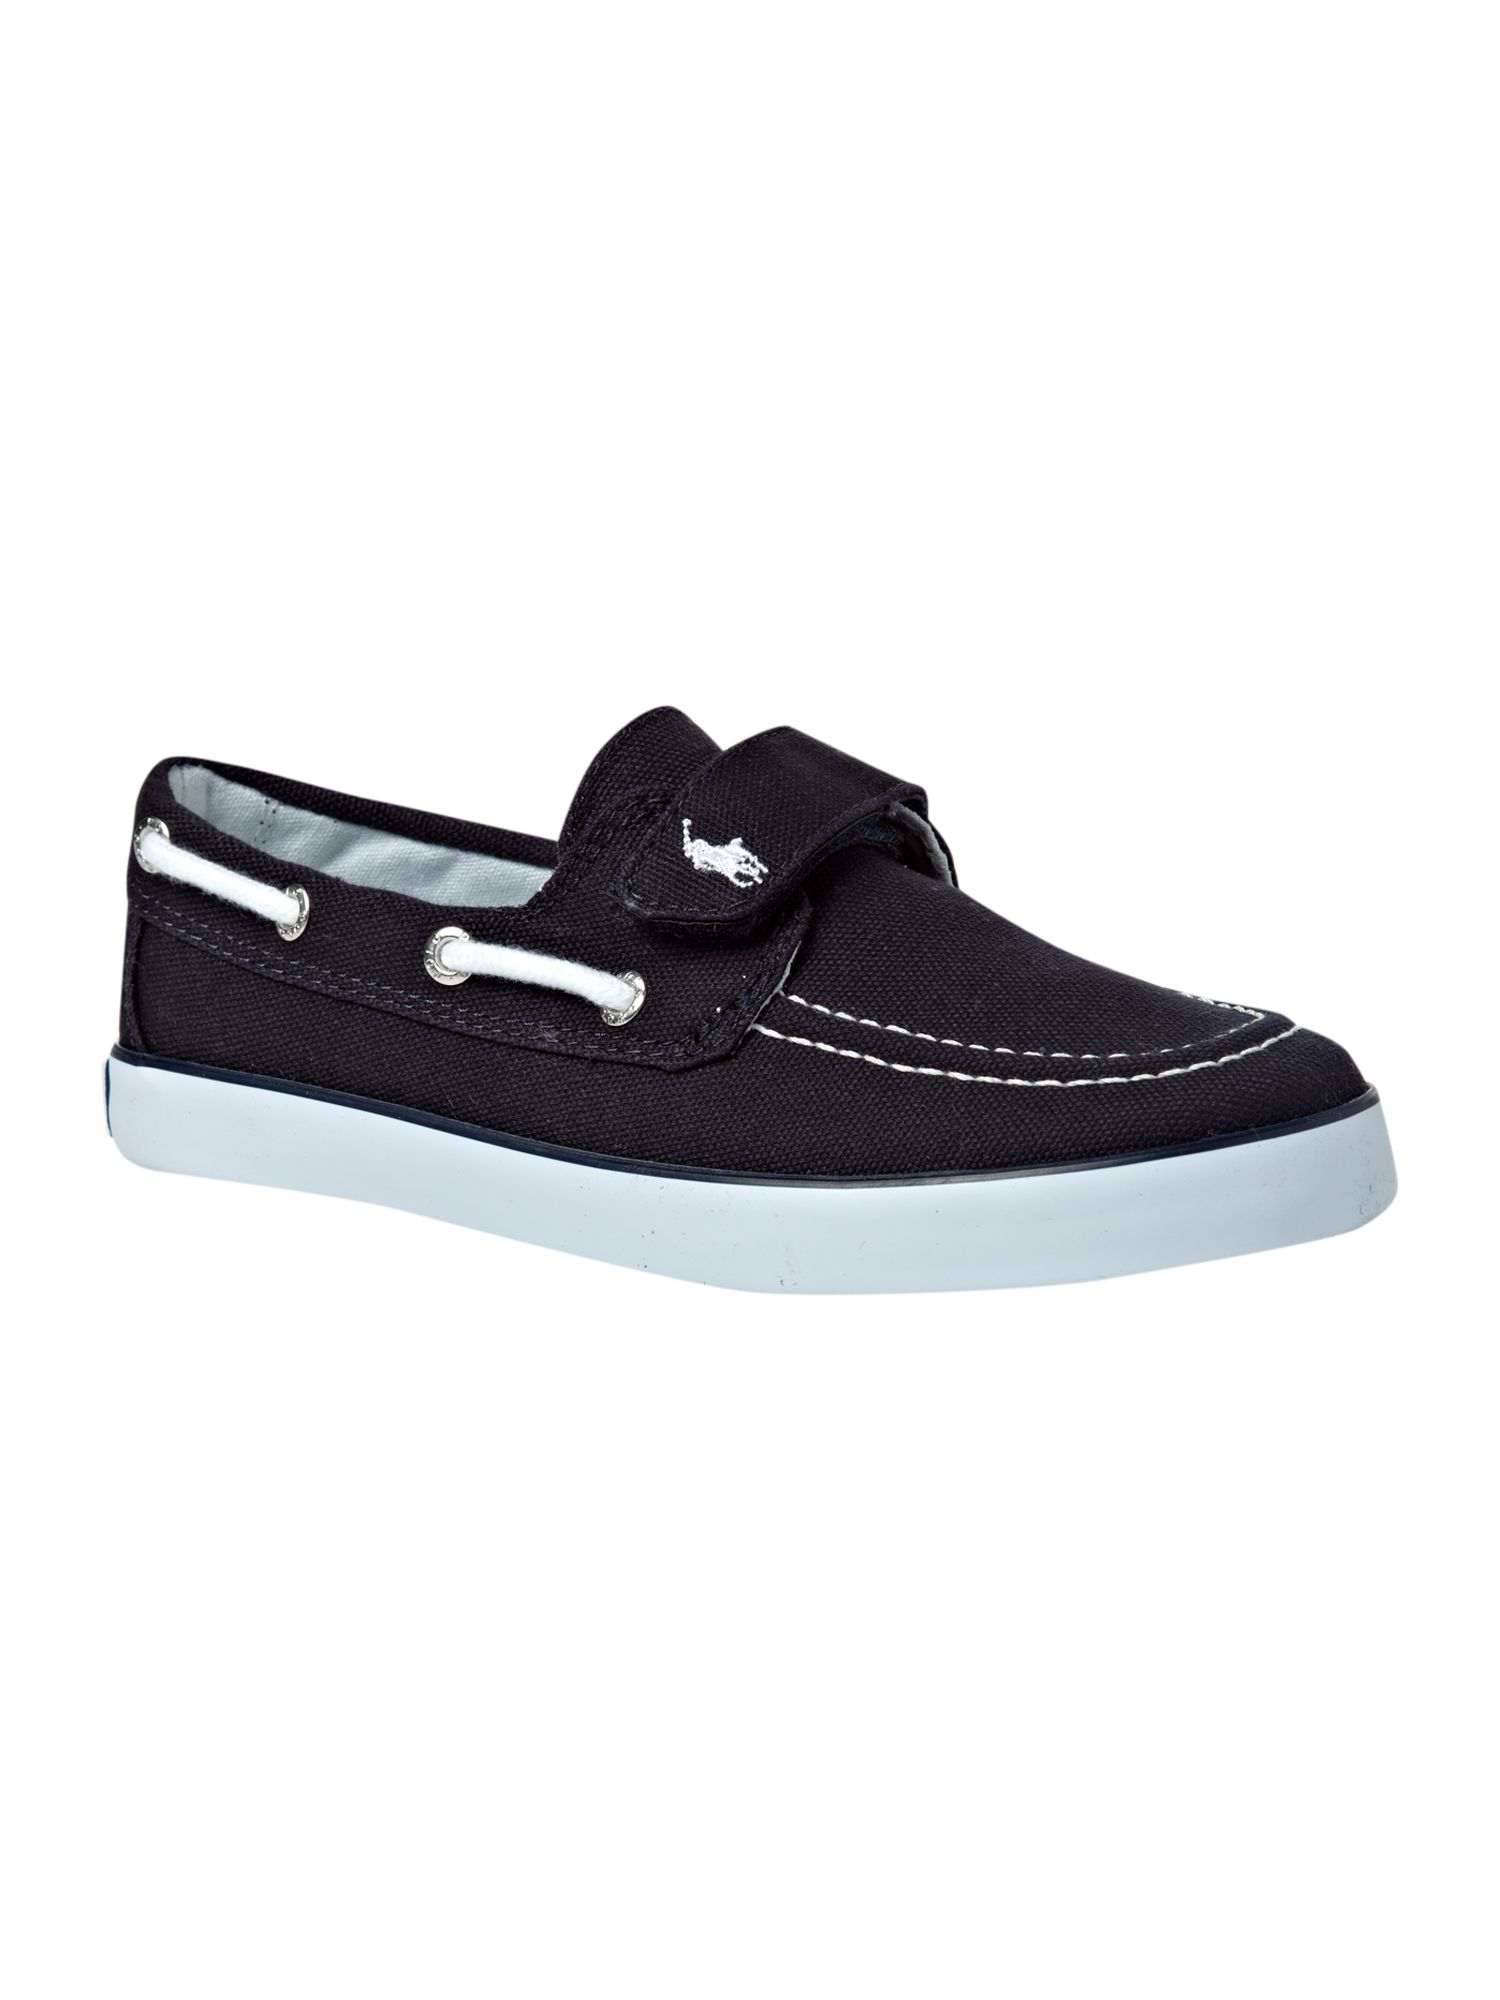 Boy`s canvas velcro deck shoe